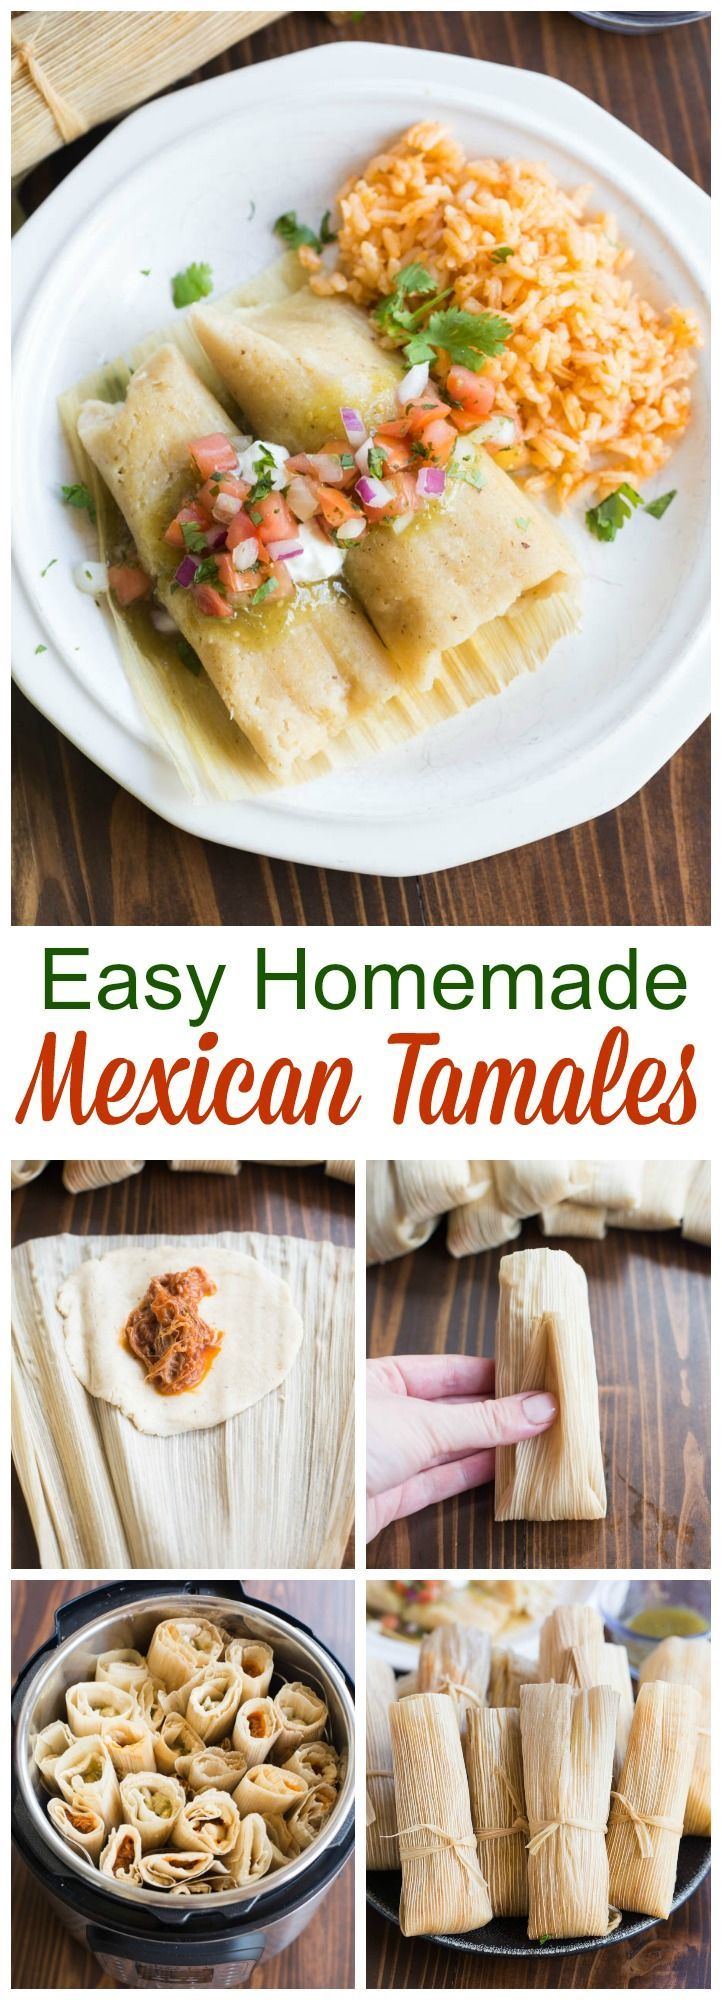 Recipe and instructions for Mexican tamales that you can steam or make in your instant pot. Pork and chicken tamales with red and green sauce. via @betrfromscratch